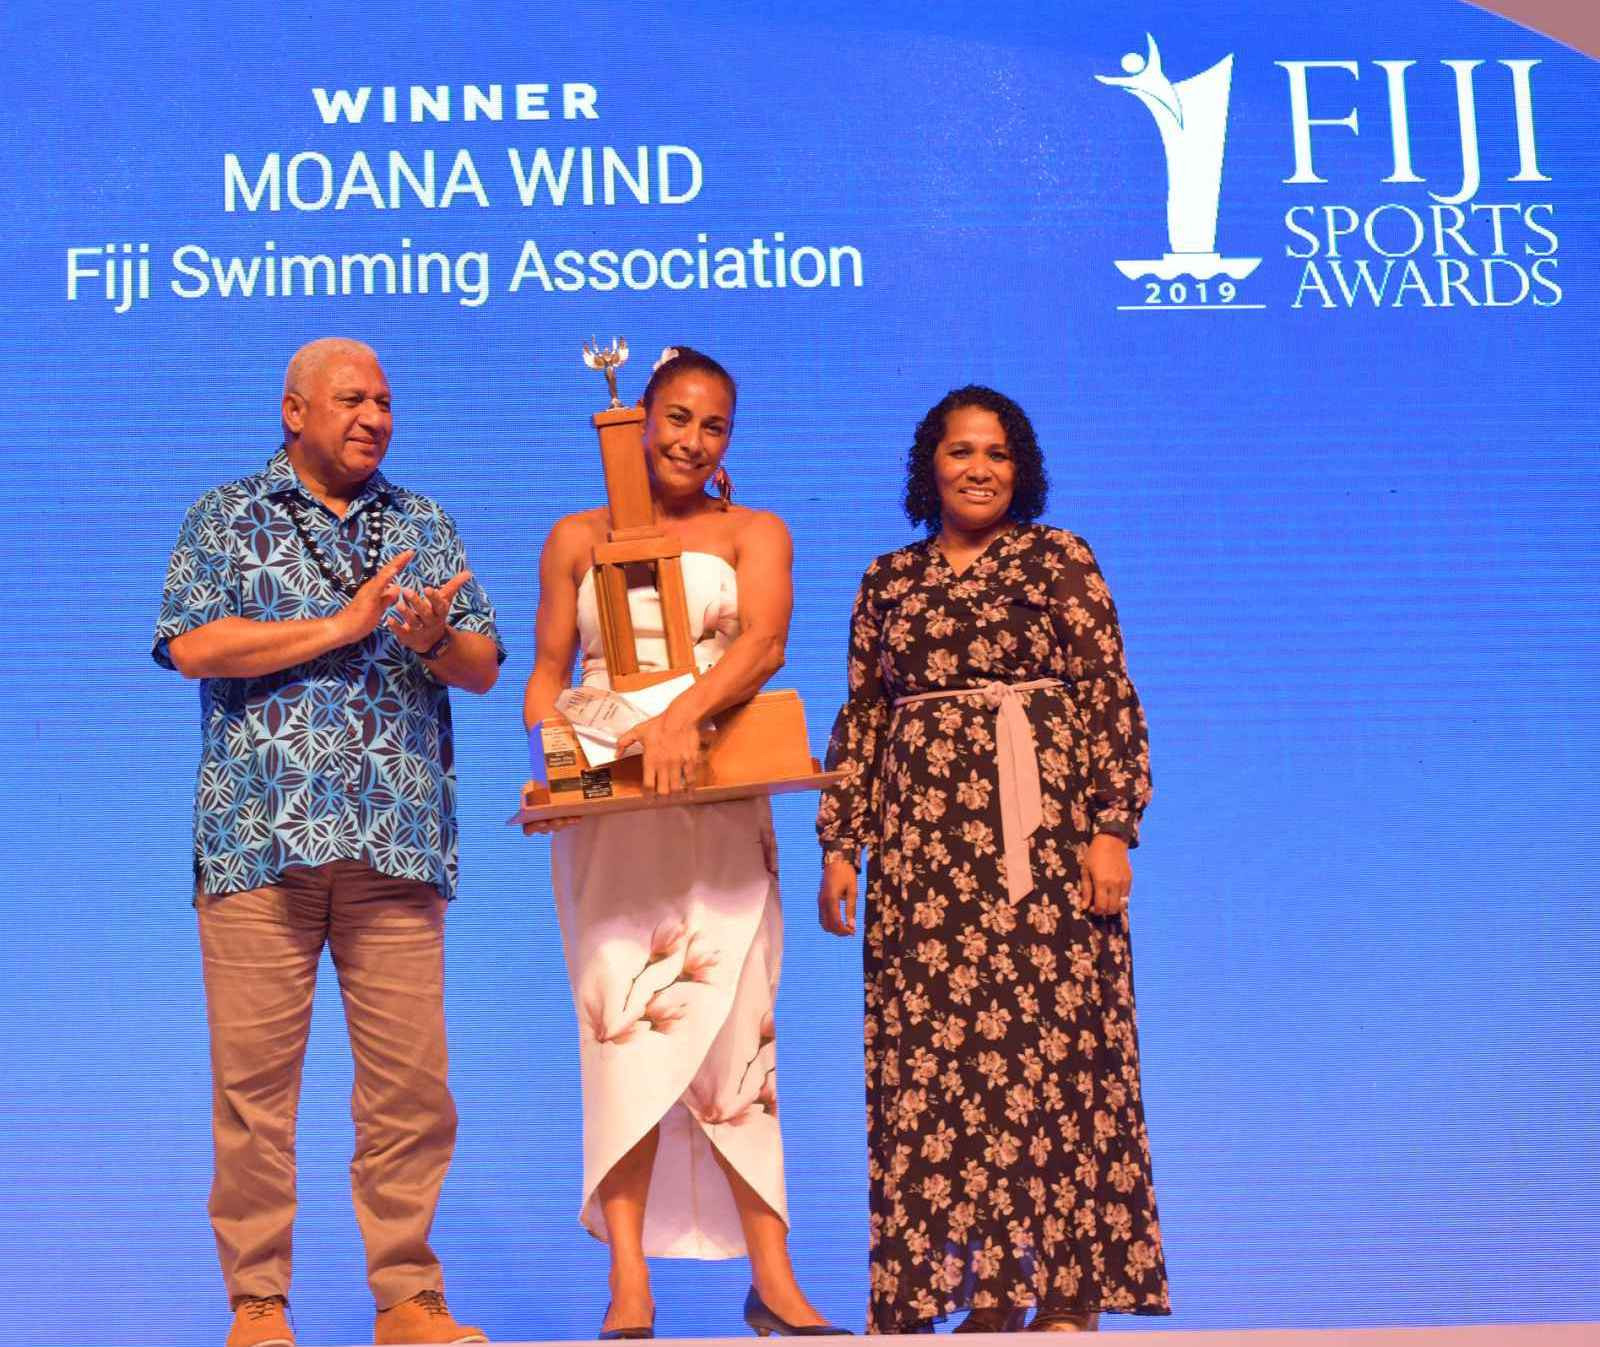 Swimmer Moana Wind received the sportswoman of the year accolade at the Fiji Sports Awards ©Facebook